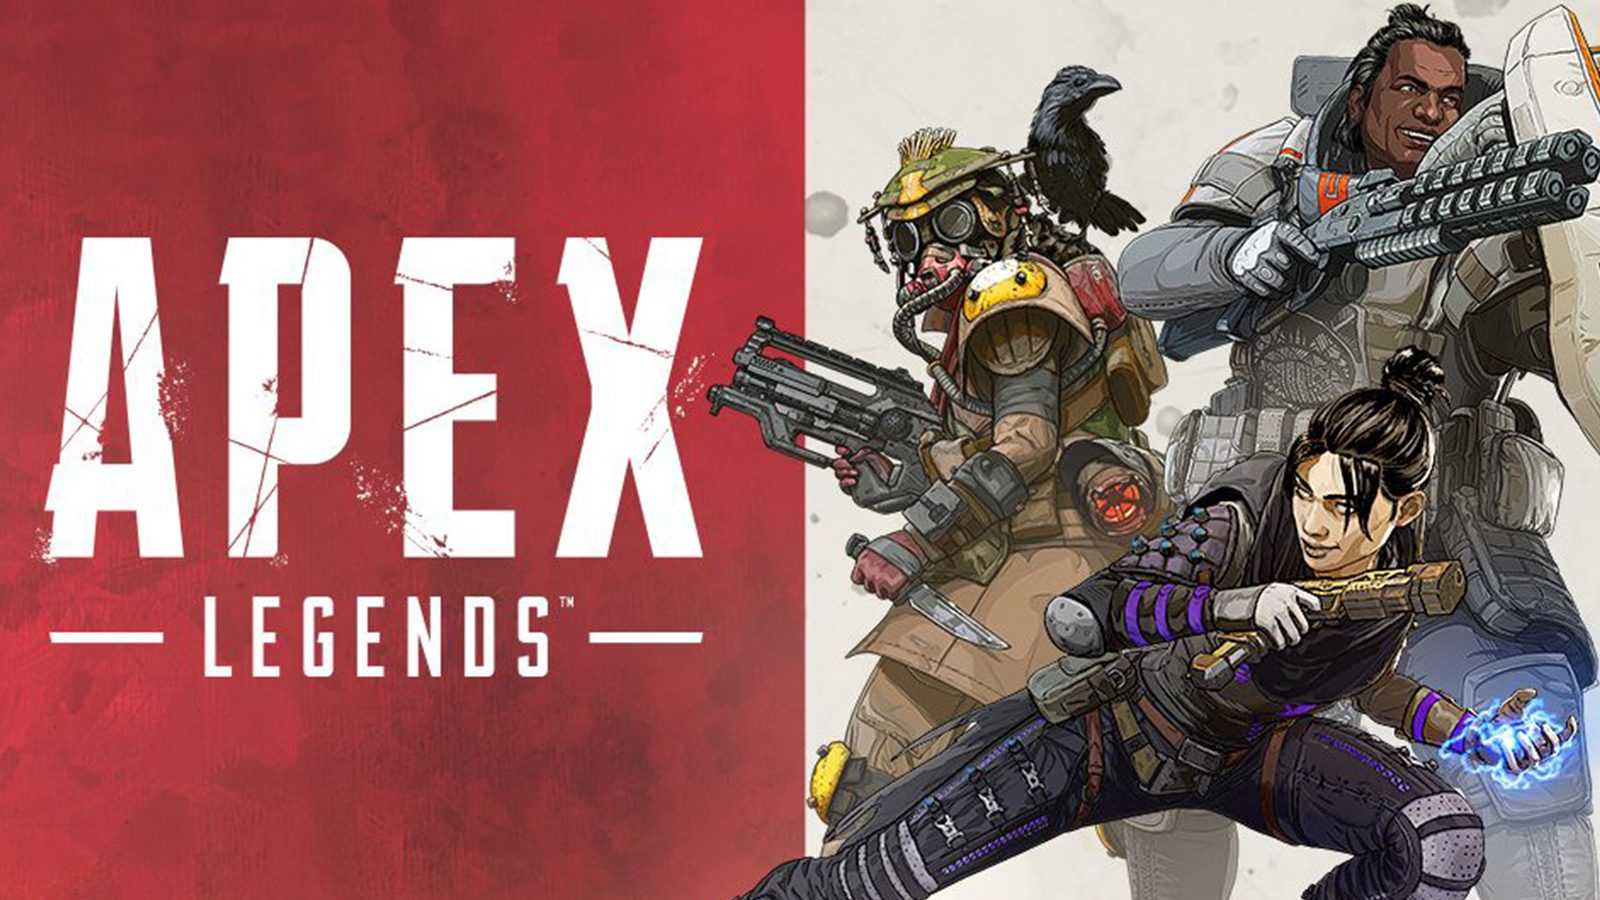 apex legends ot 40 urovnya [origin] + skidka 49 rur